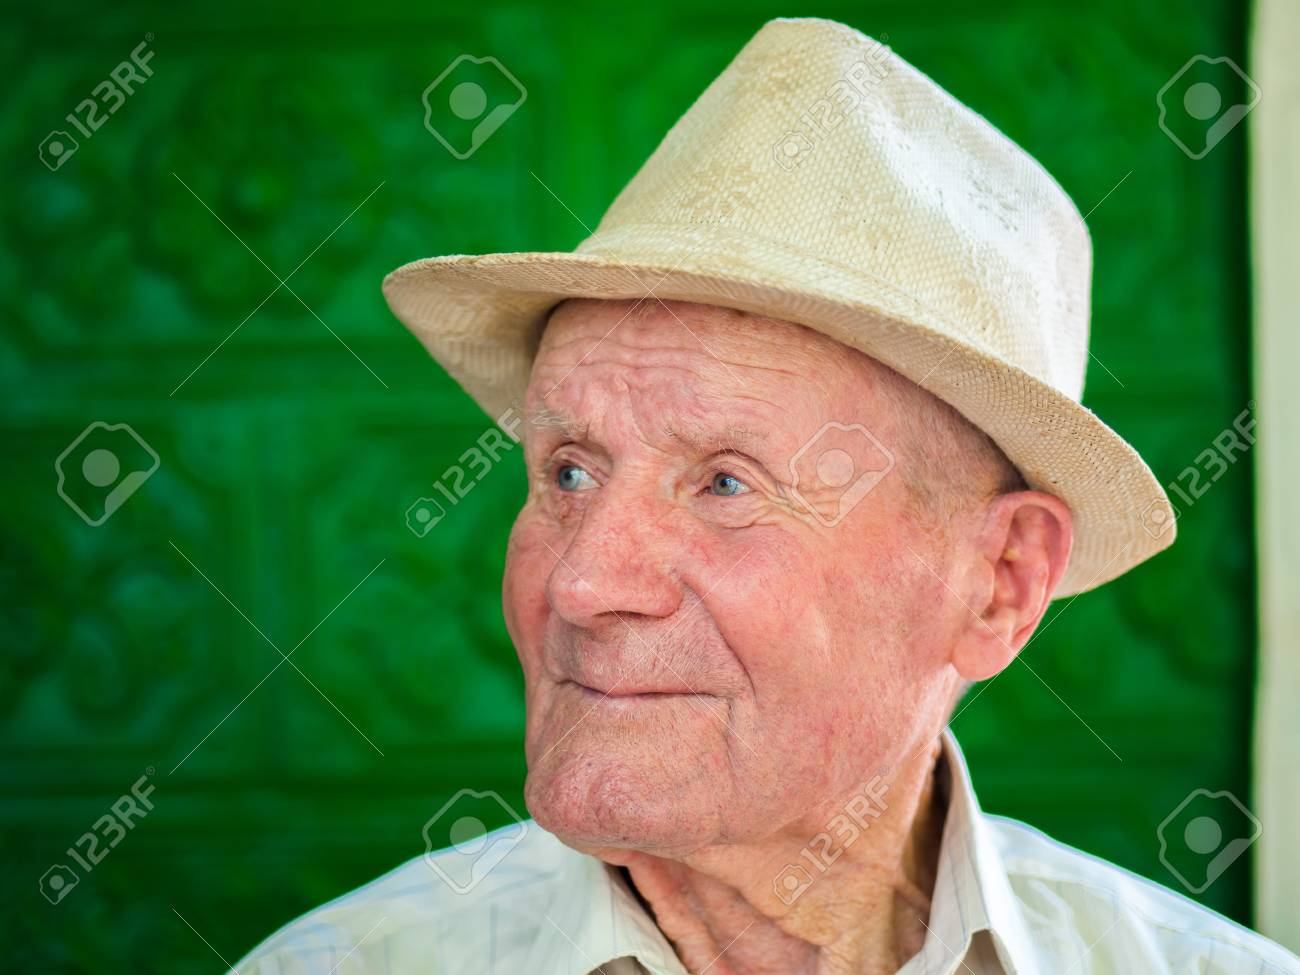 bcc7a4d39 Very old man portrait with emotions. Grandfather happy and smiling...